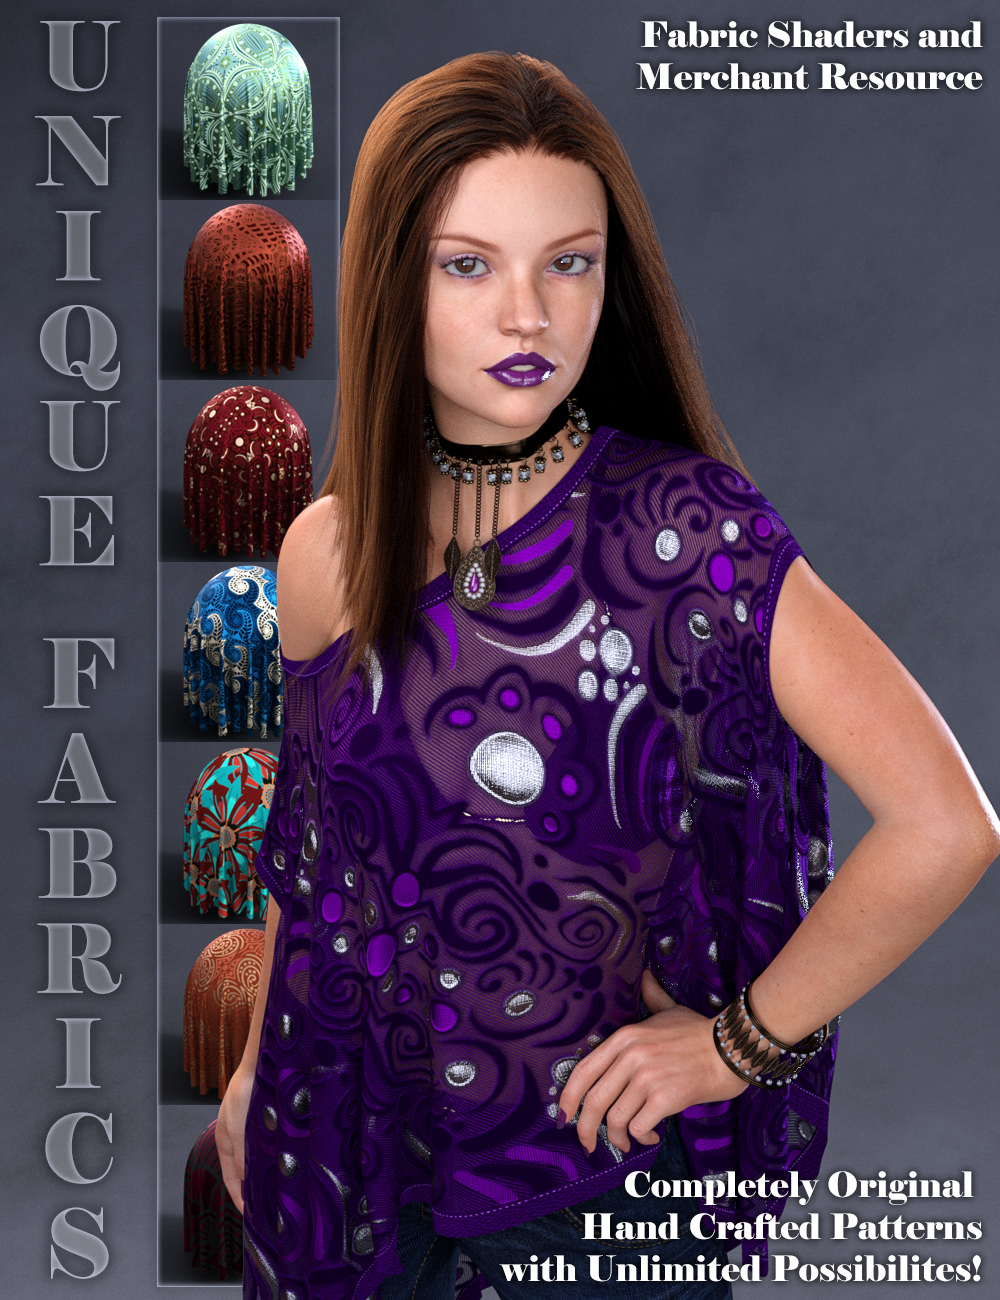 Unique Fabrics Shaders and Merchant Resource by: ARTCollaborations, 3D Models by Daz 3D